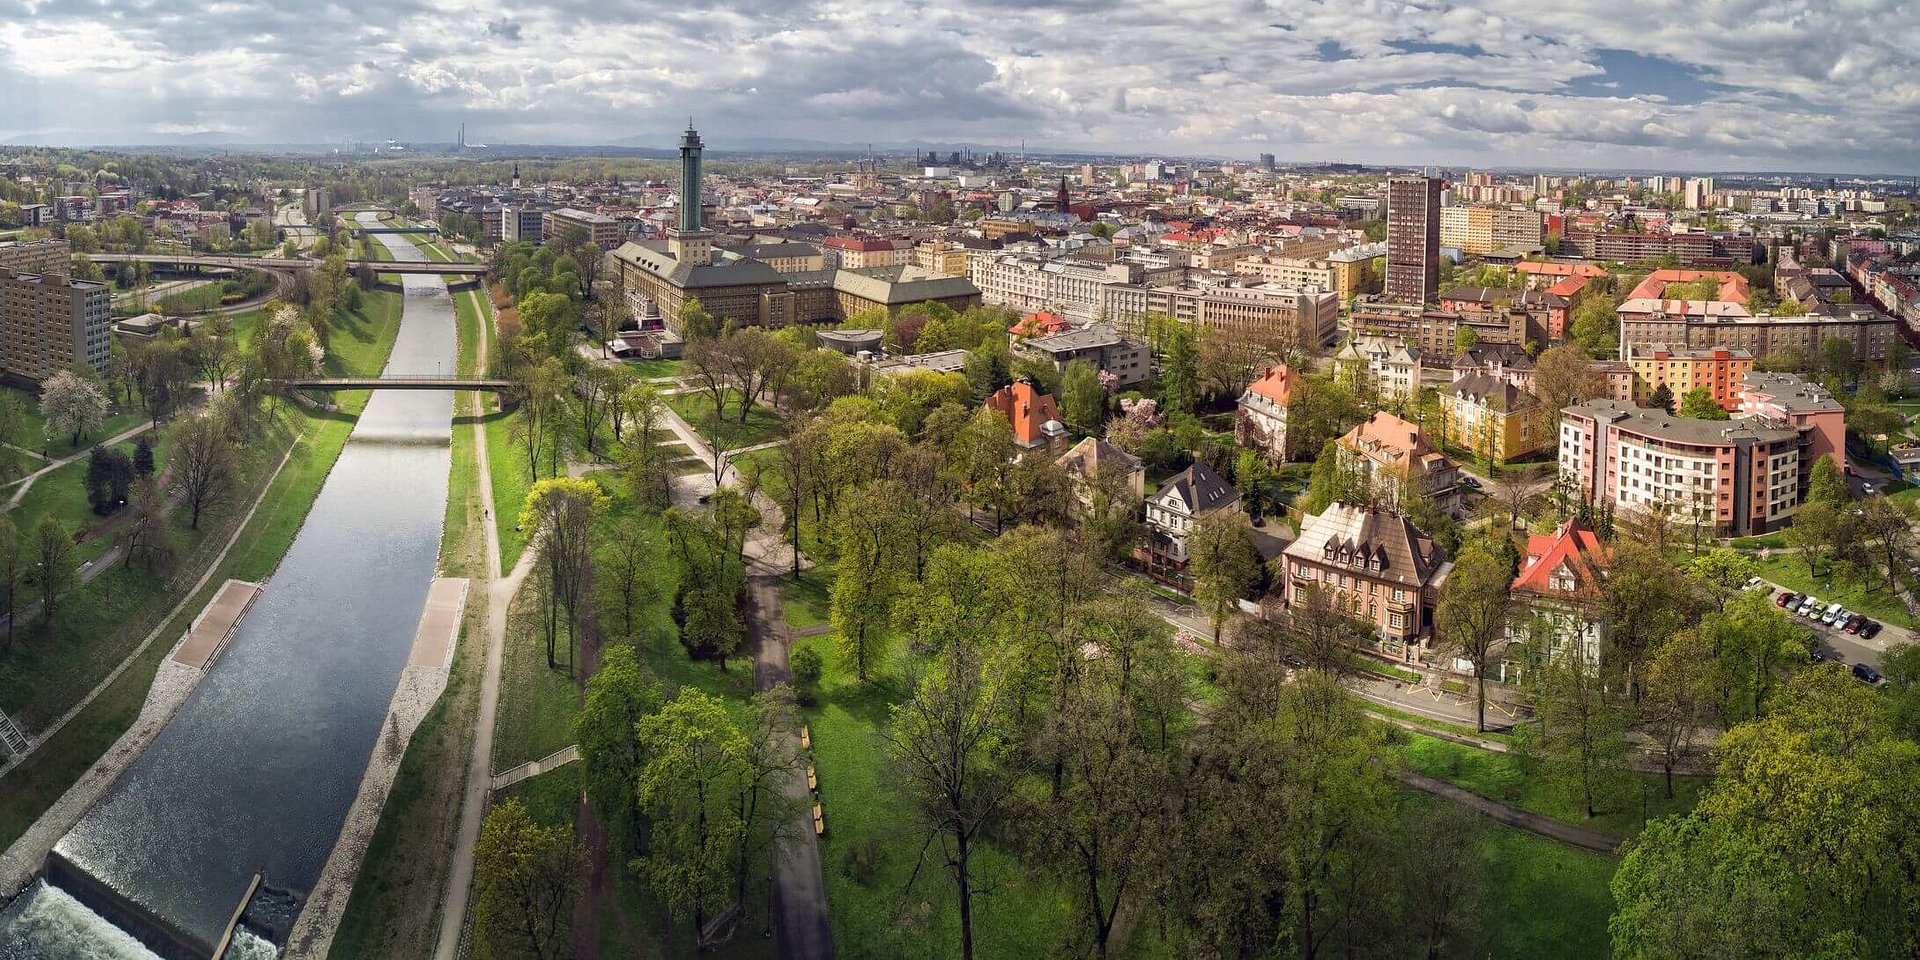 Insurance firm, AXA, has acquired additional offices in Ostrava